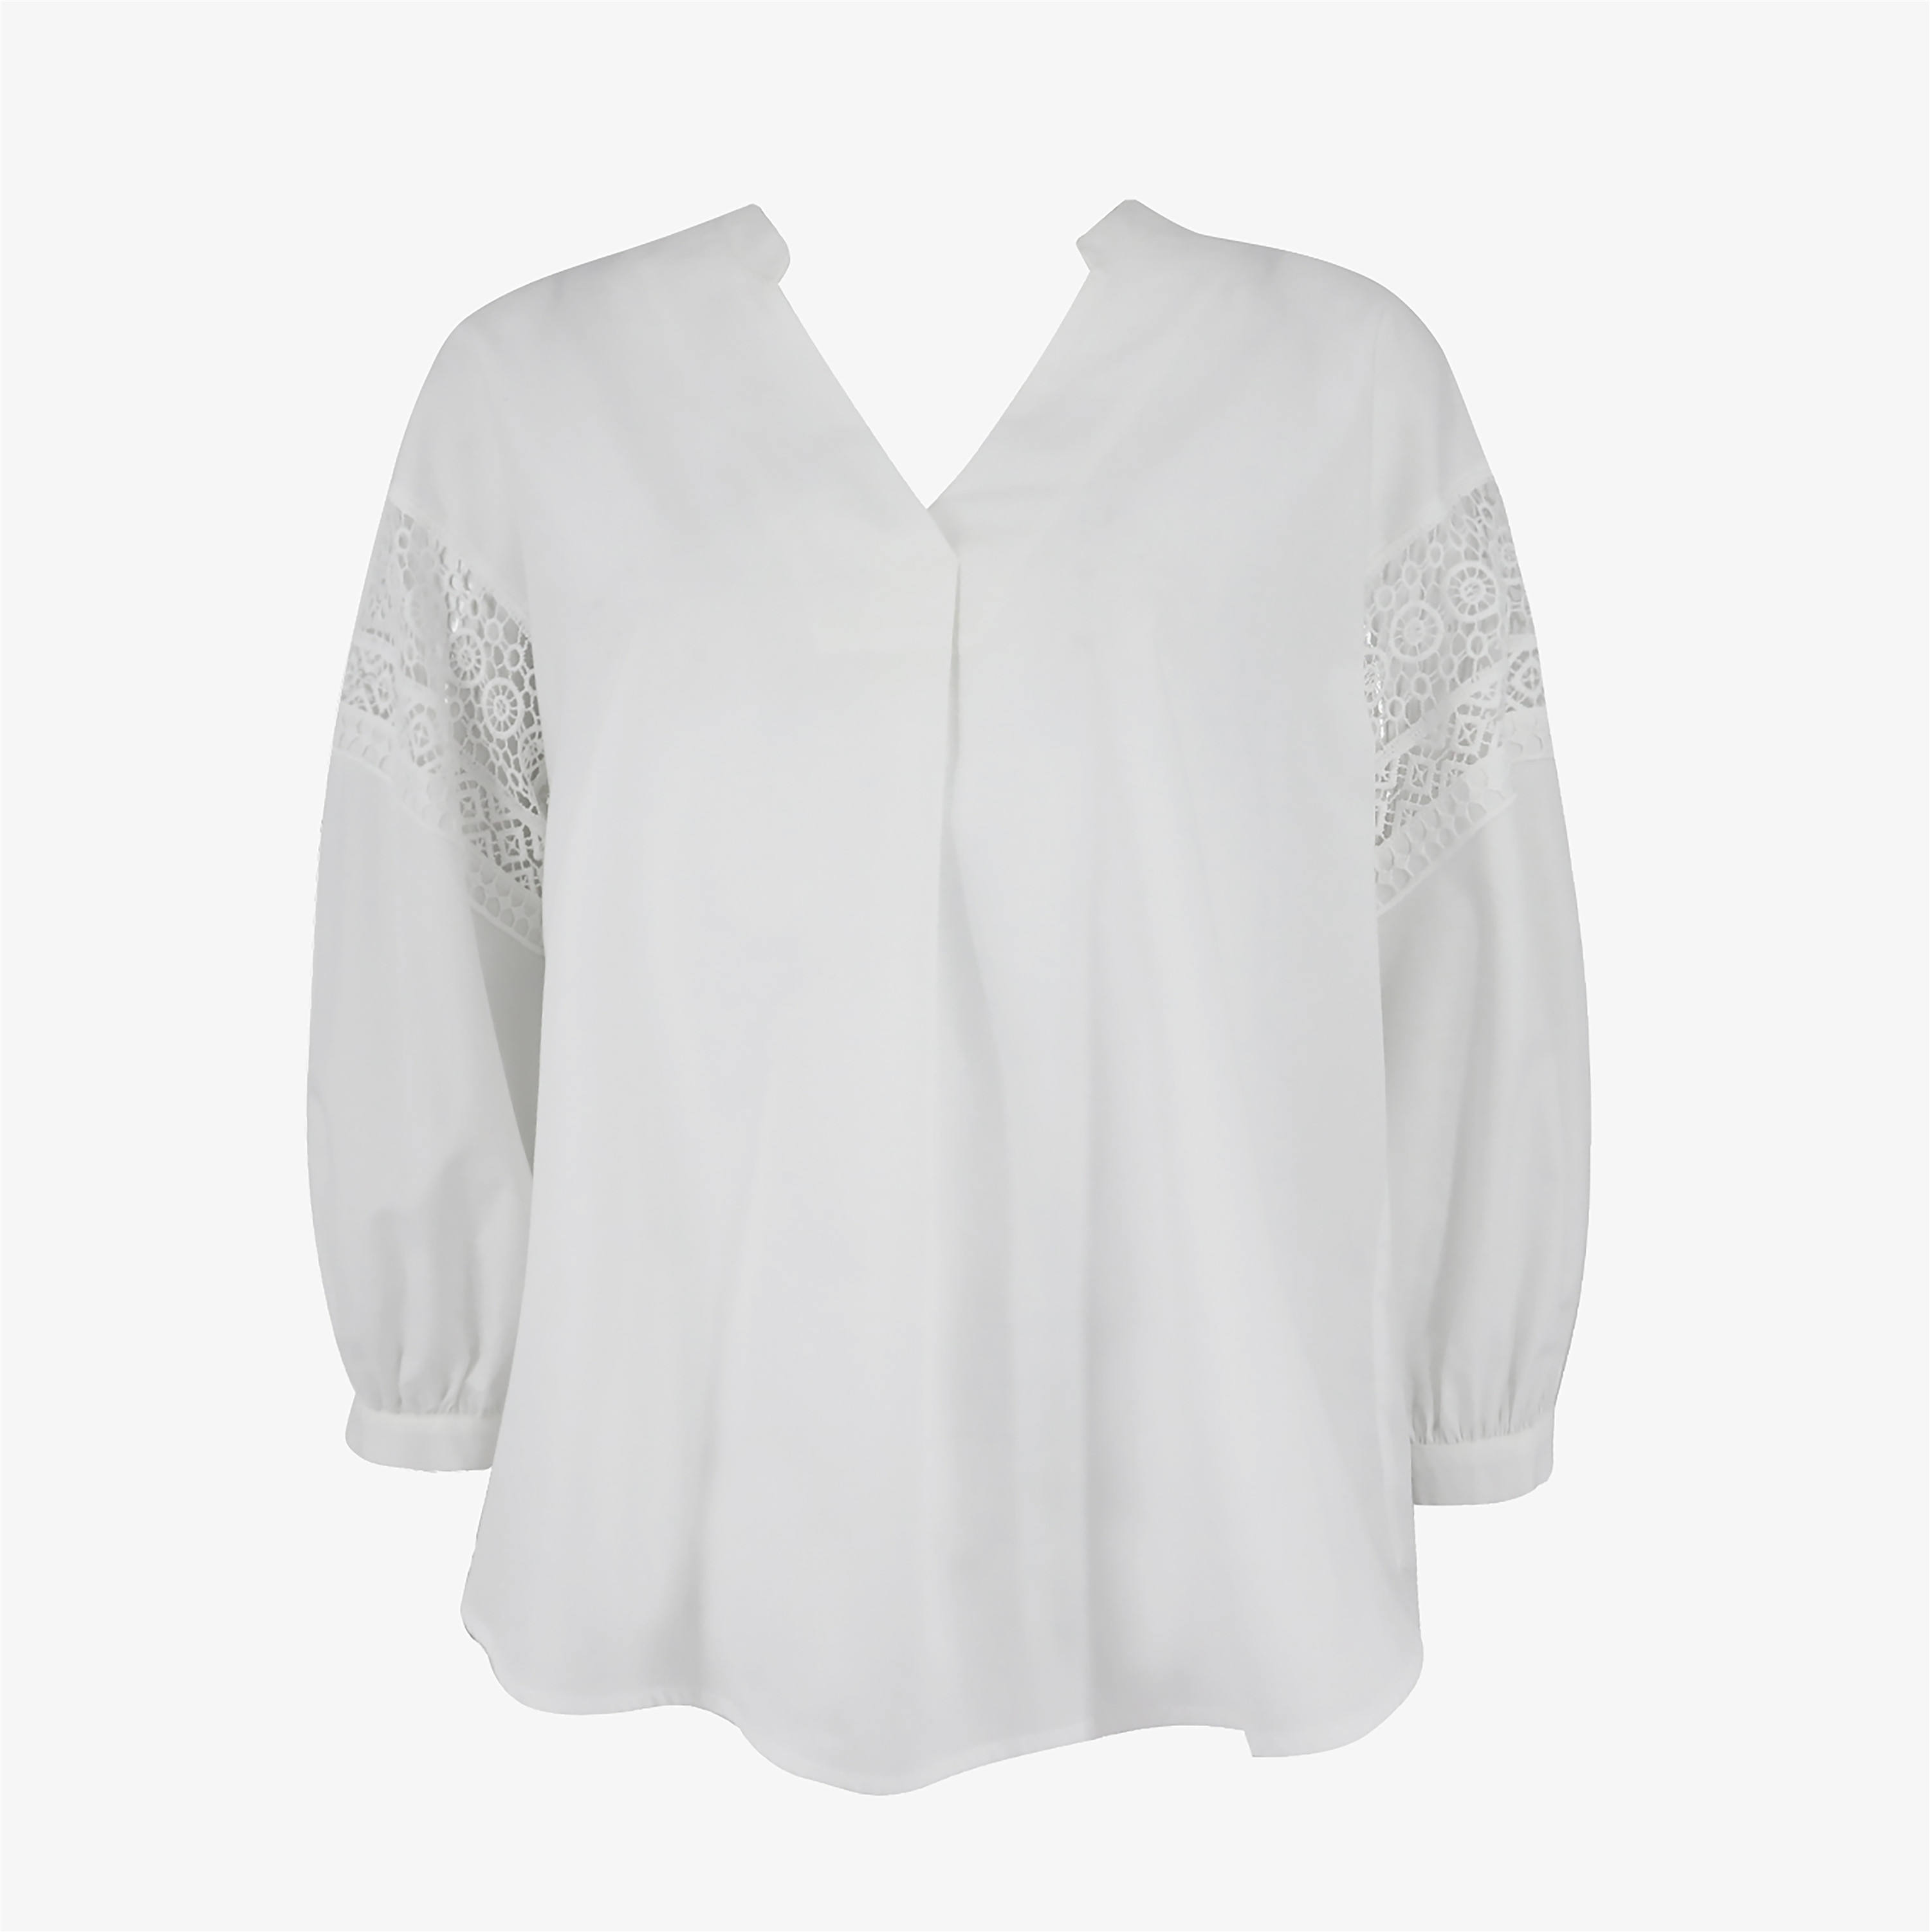 2020 Spring/Summer Fashion V-Neck With Lace at Sleeve For Women Blouse